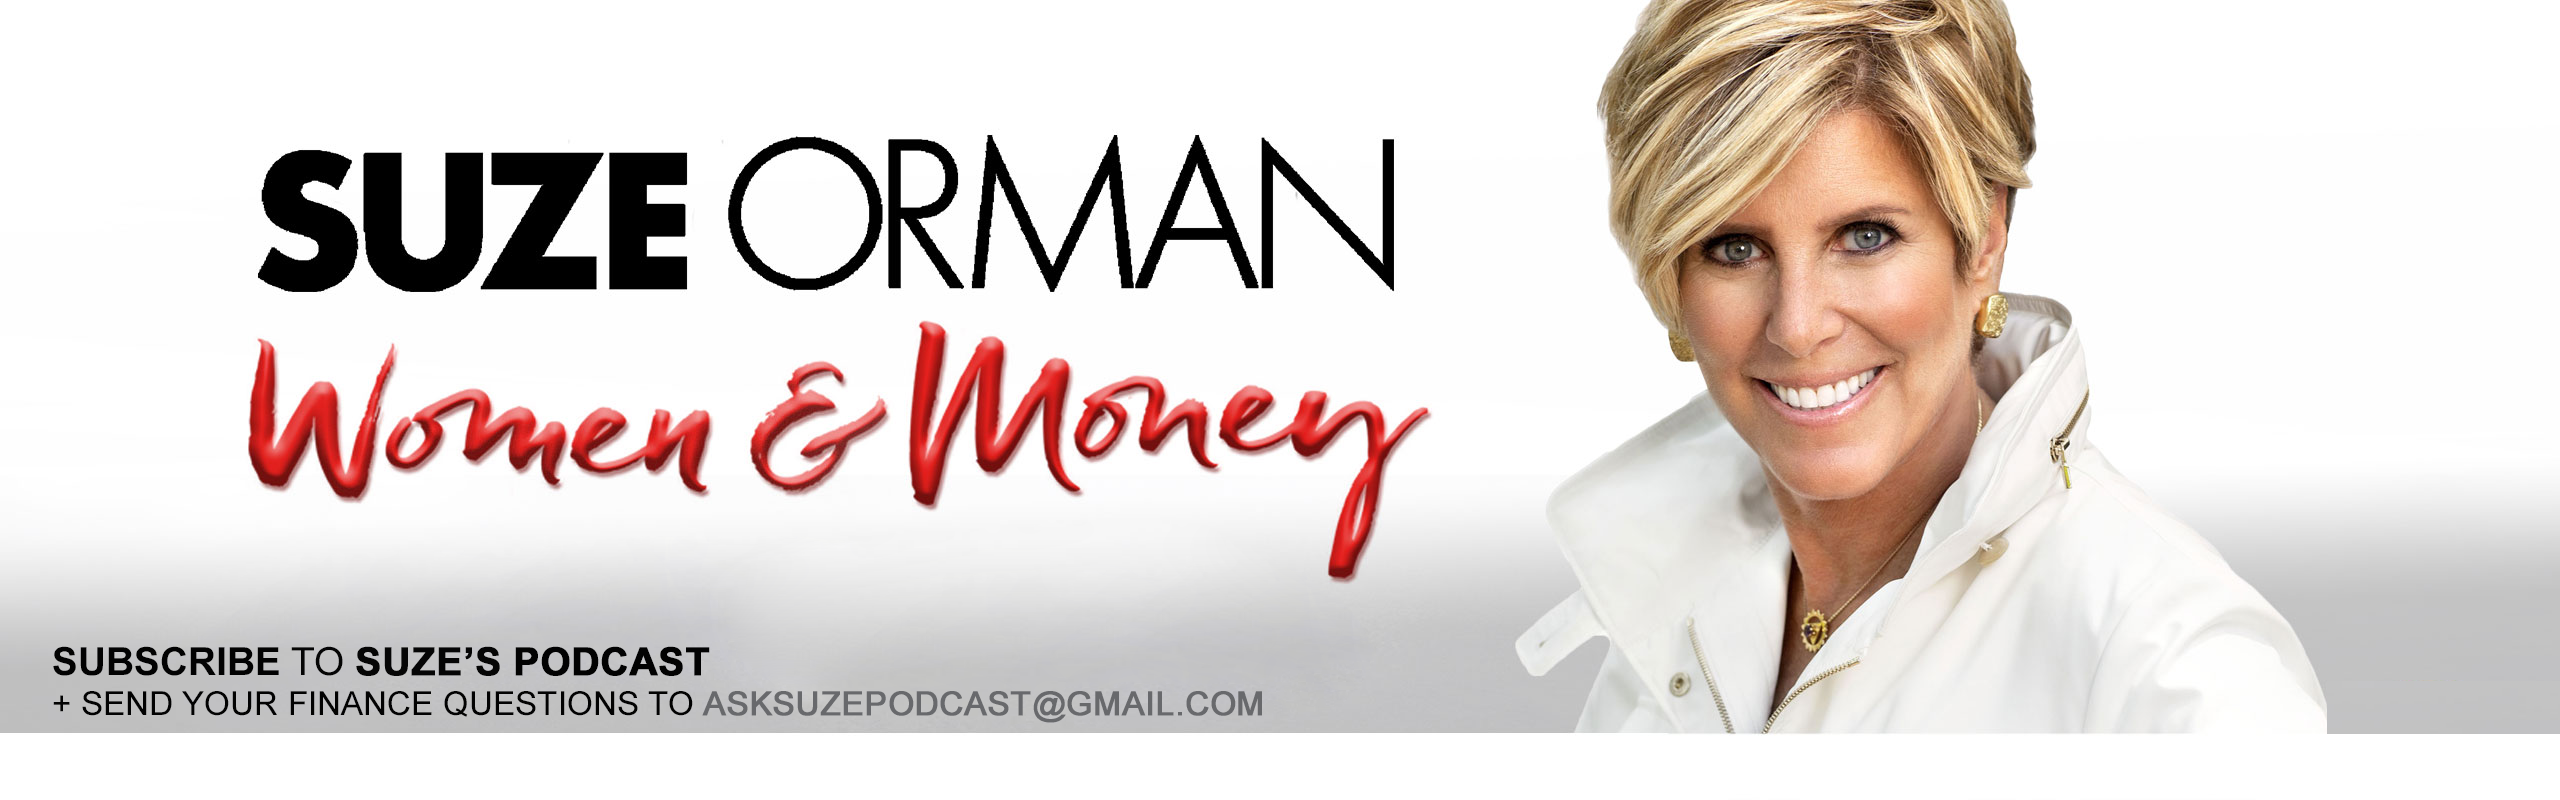 Suze orman personal financial guru can i afford it suze orman show next solutioingenieria Choice Image